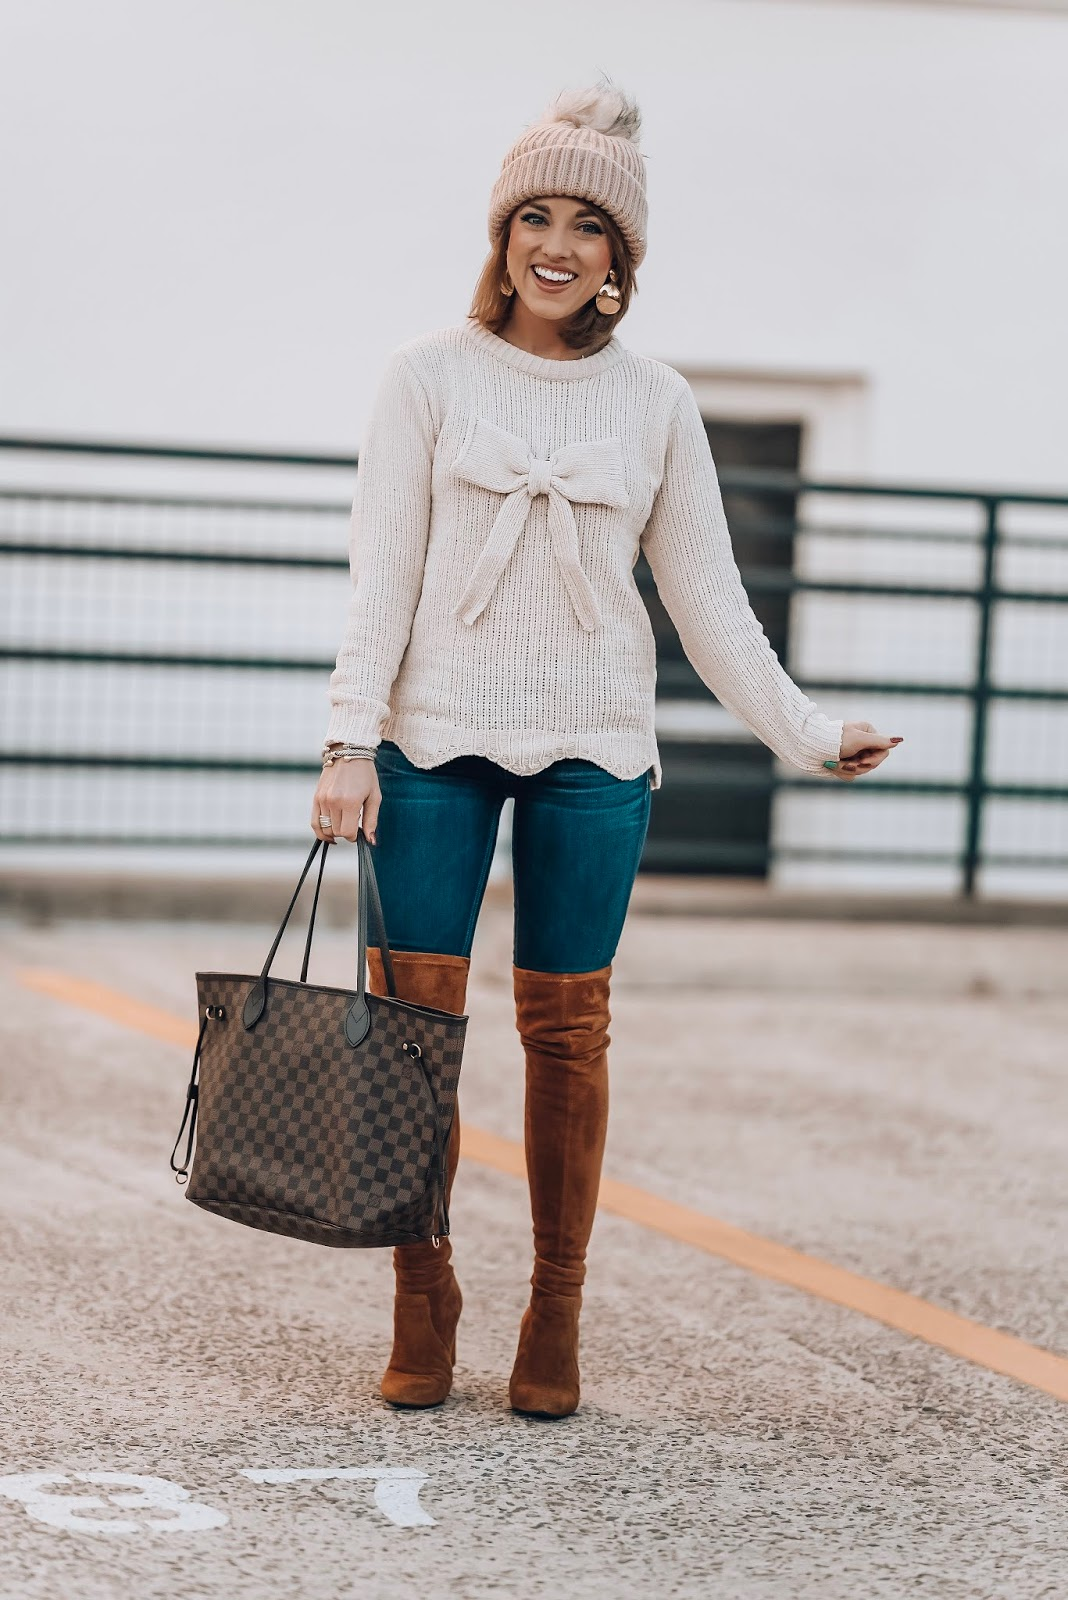 Scallop, Chenille Bow Sweater + 2019 Goals - Something Delightful Blog